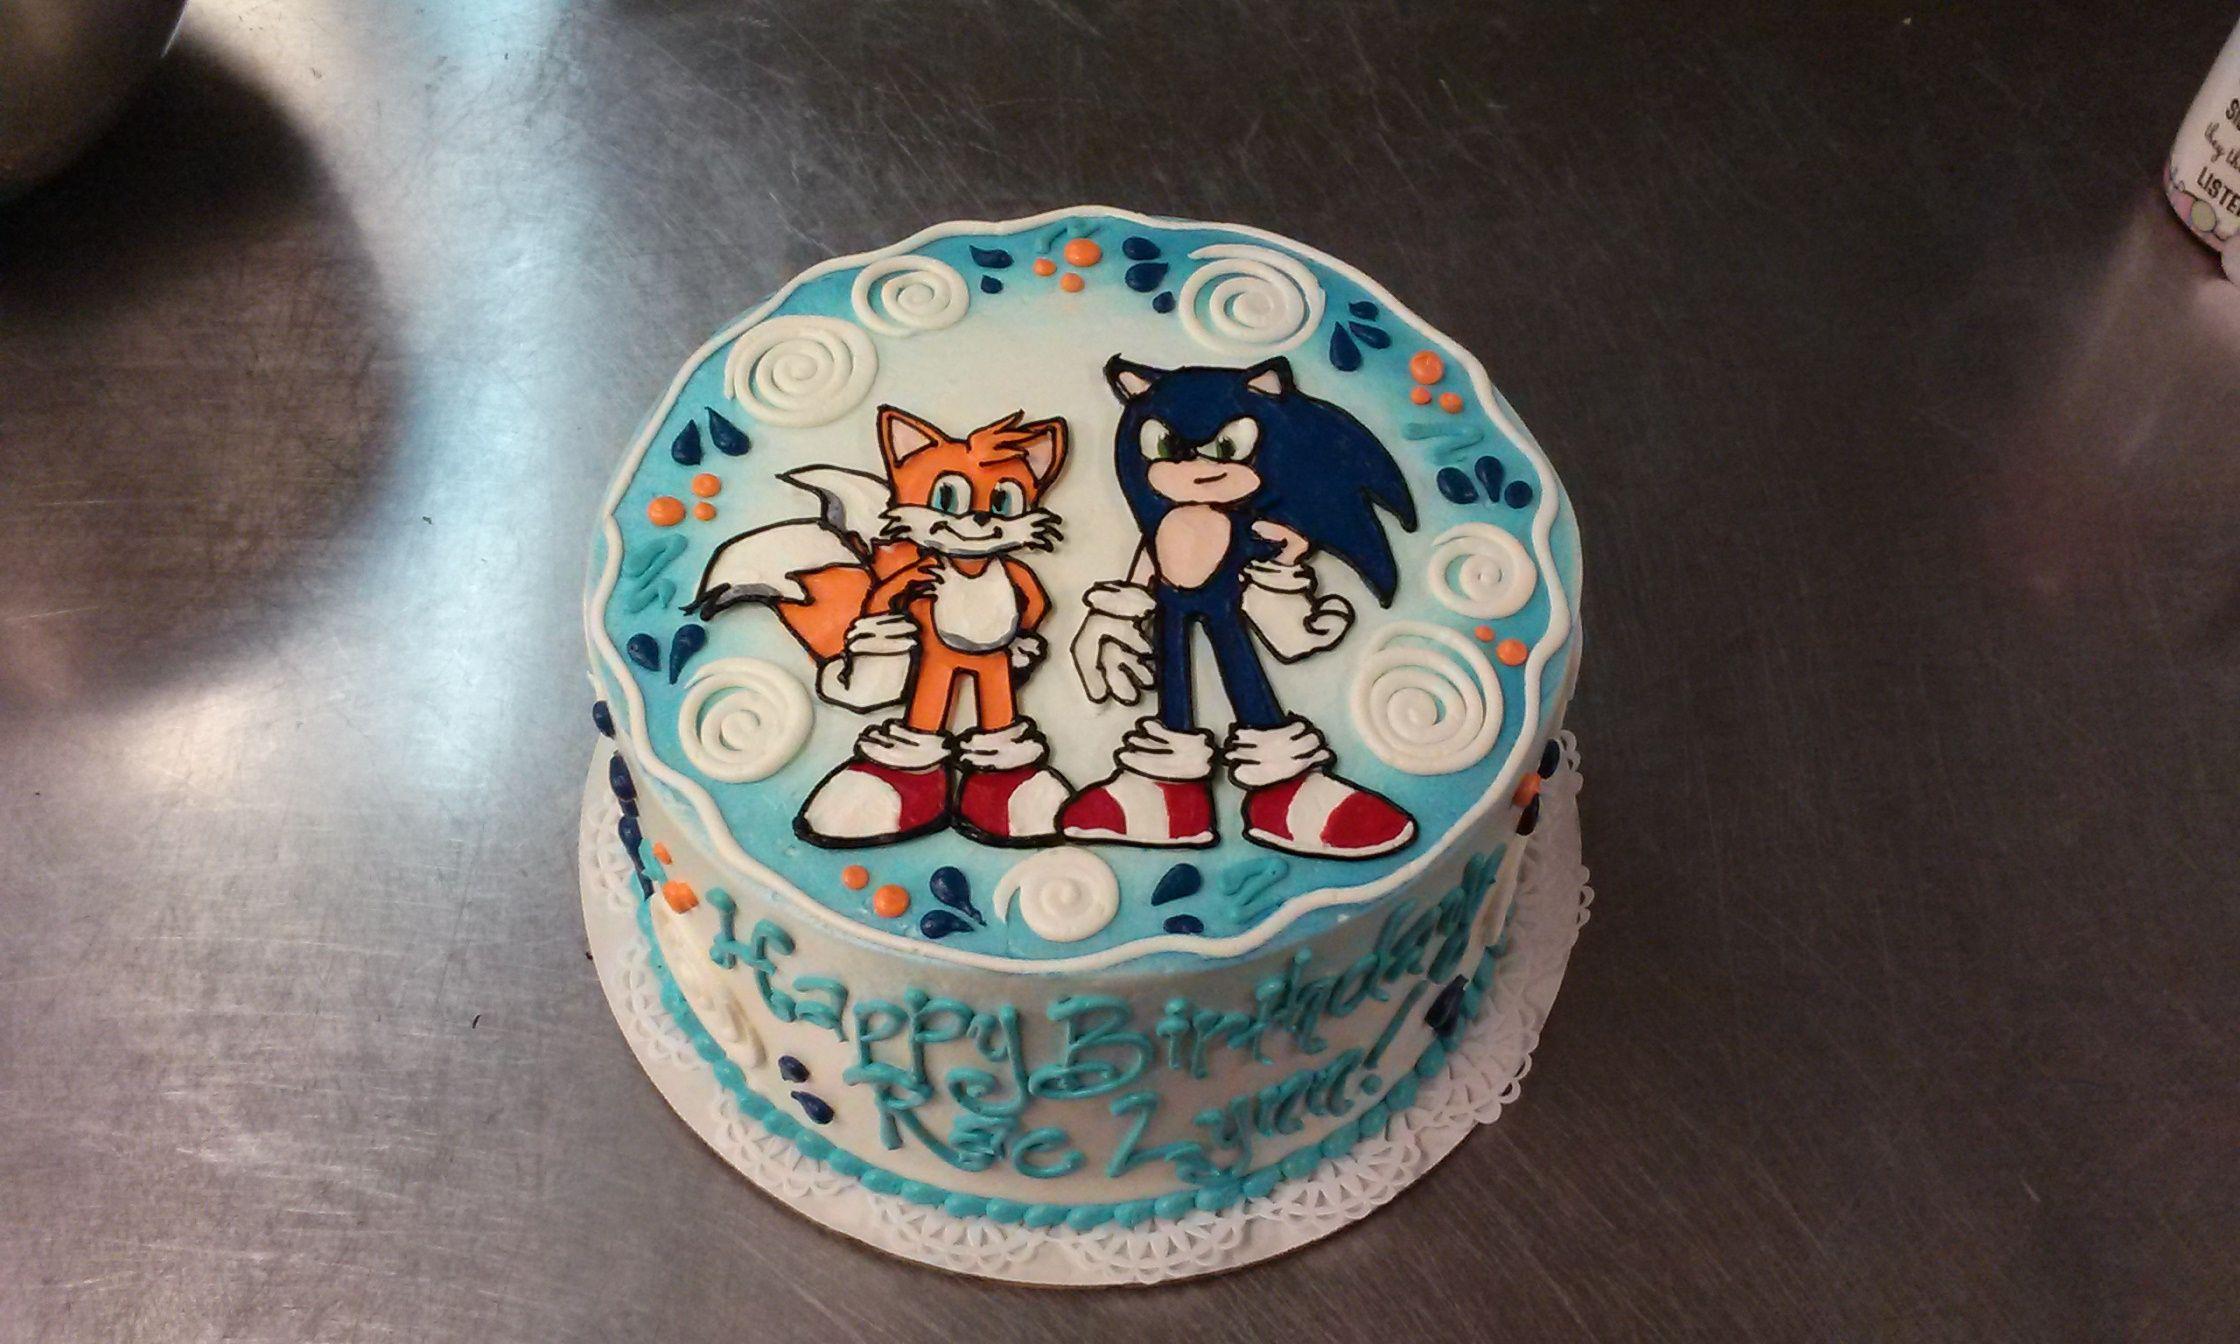 A Hand Piped Sonic The Hedgehog Cake In Buttercream Cumpleanos